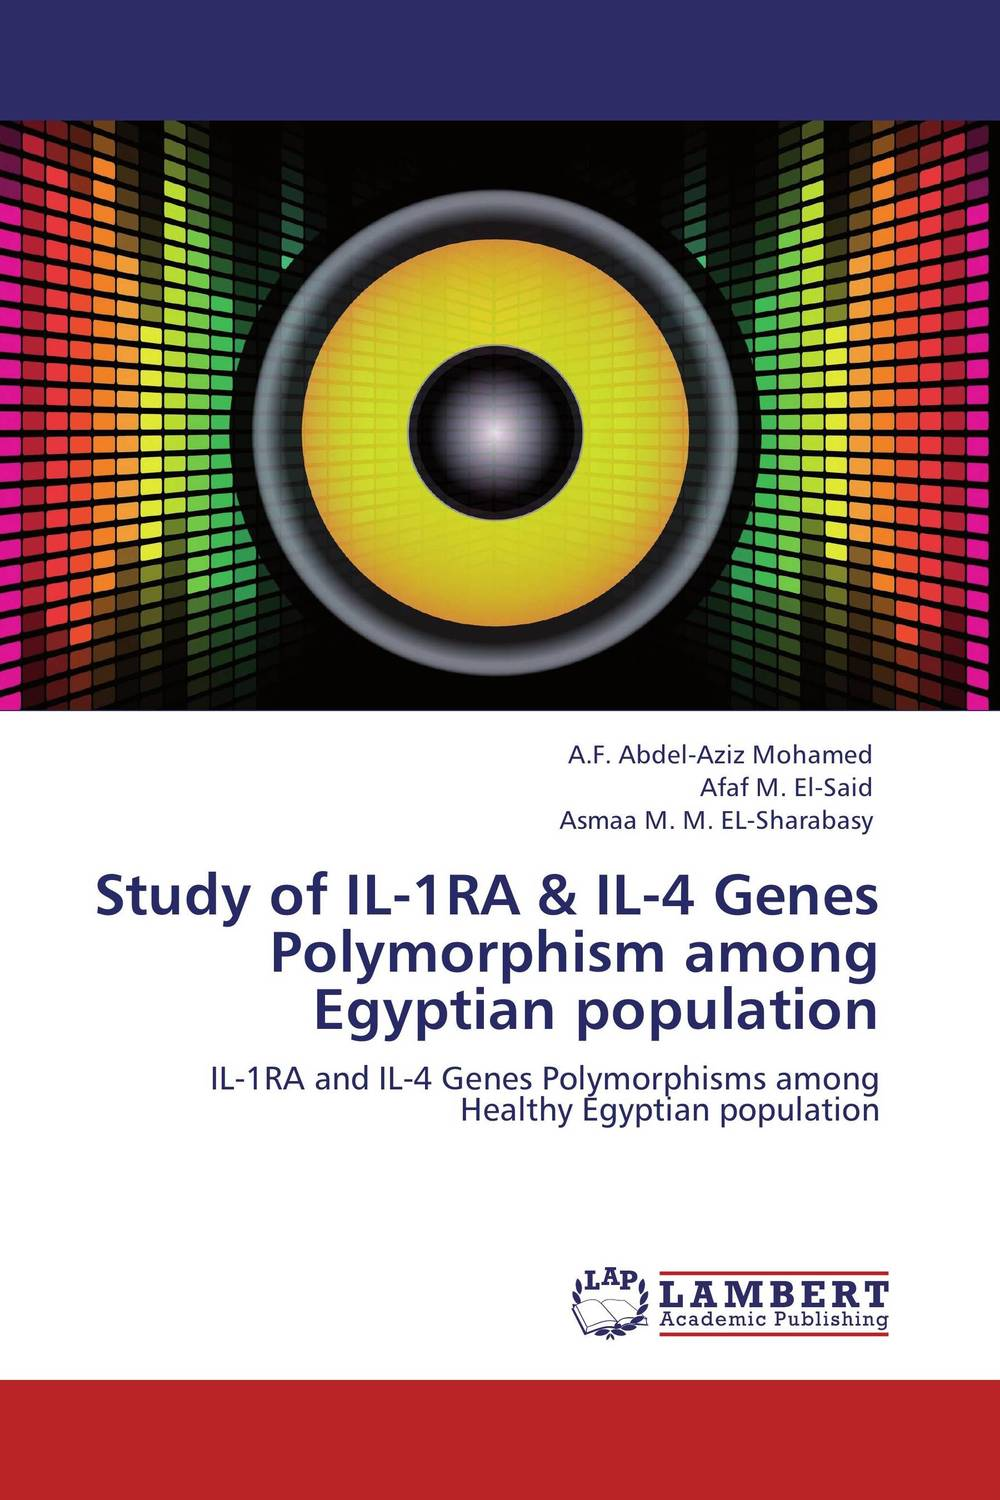 Study of IL-1RA & IL-4 Genes Polymorphism among Egyptian population polymorphism of adiponectin and tcf7l2 genes in iraqi t2dm